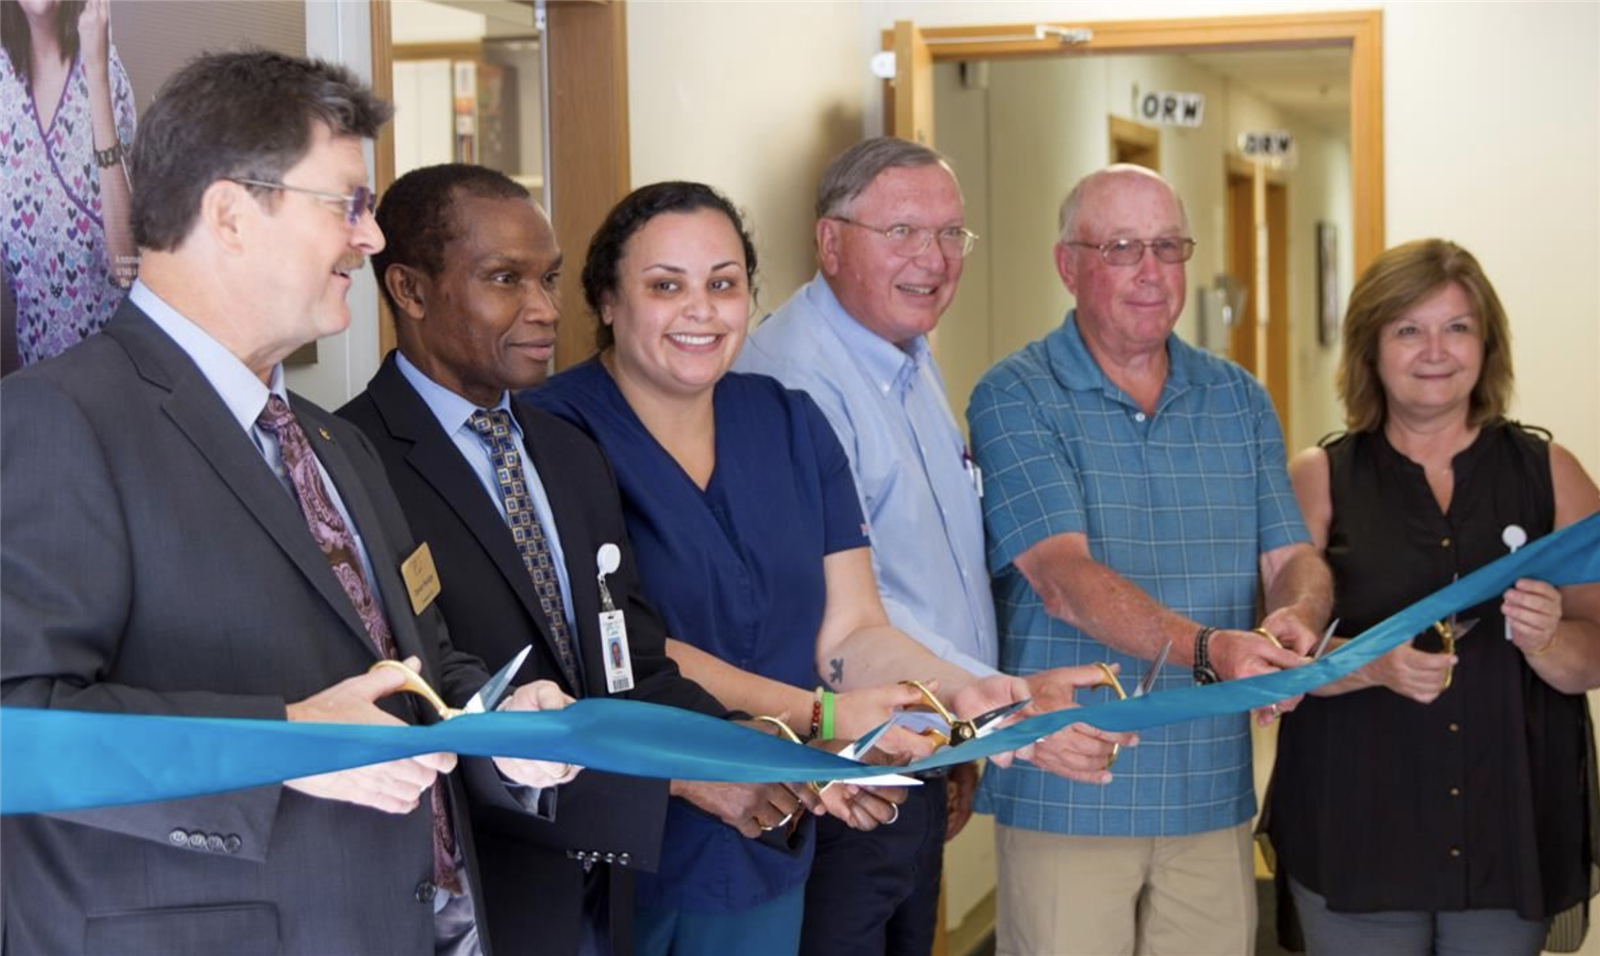 Six people cut a blue ribbon to open a new facility